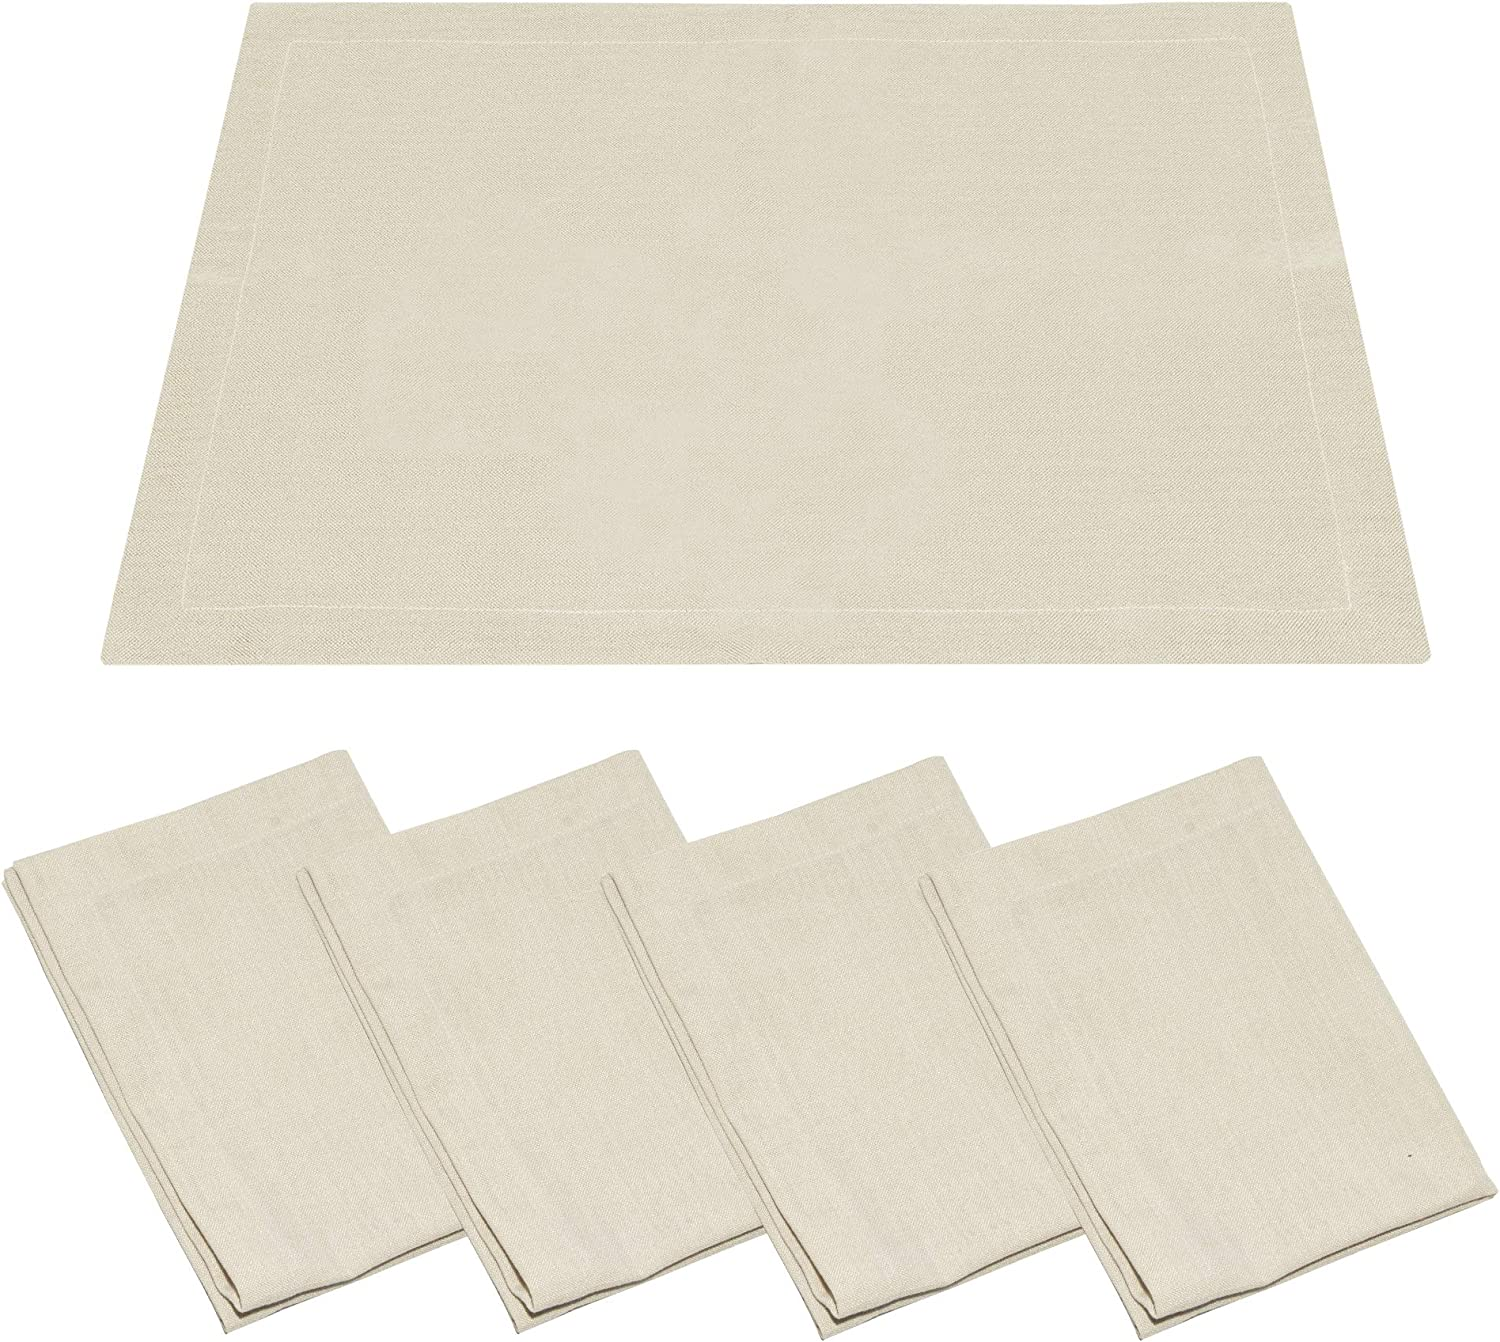 GuildreyTex Table Placemats, Machine Washable, Non-Wrinkle Linen Texture Farmhouse Modern Dining Table Mats Set of 4, Natural